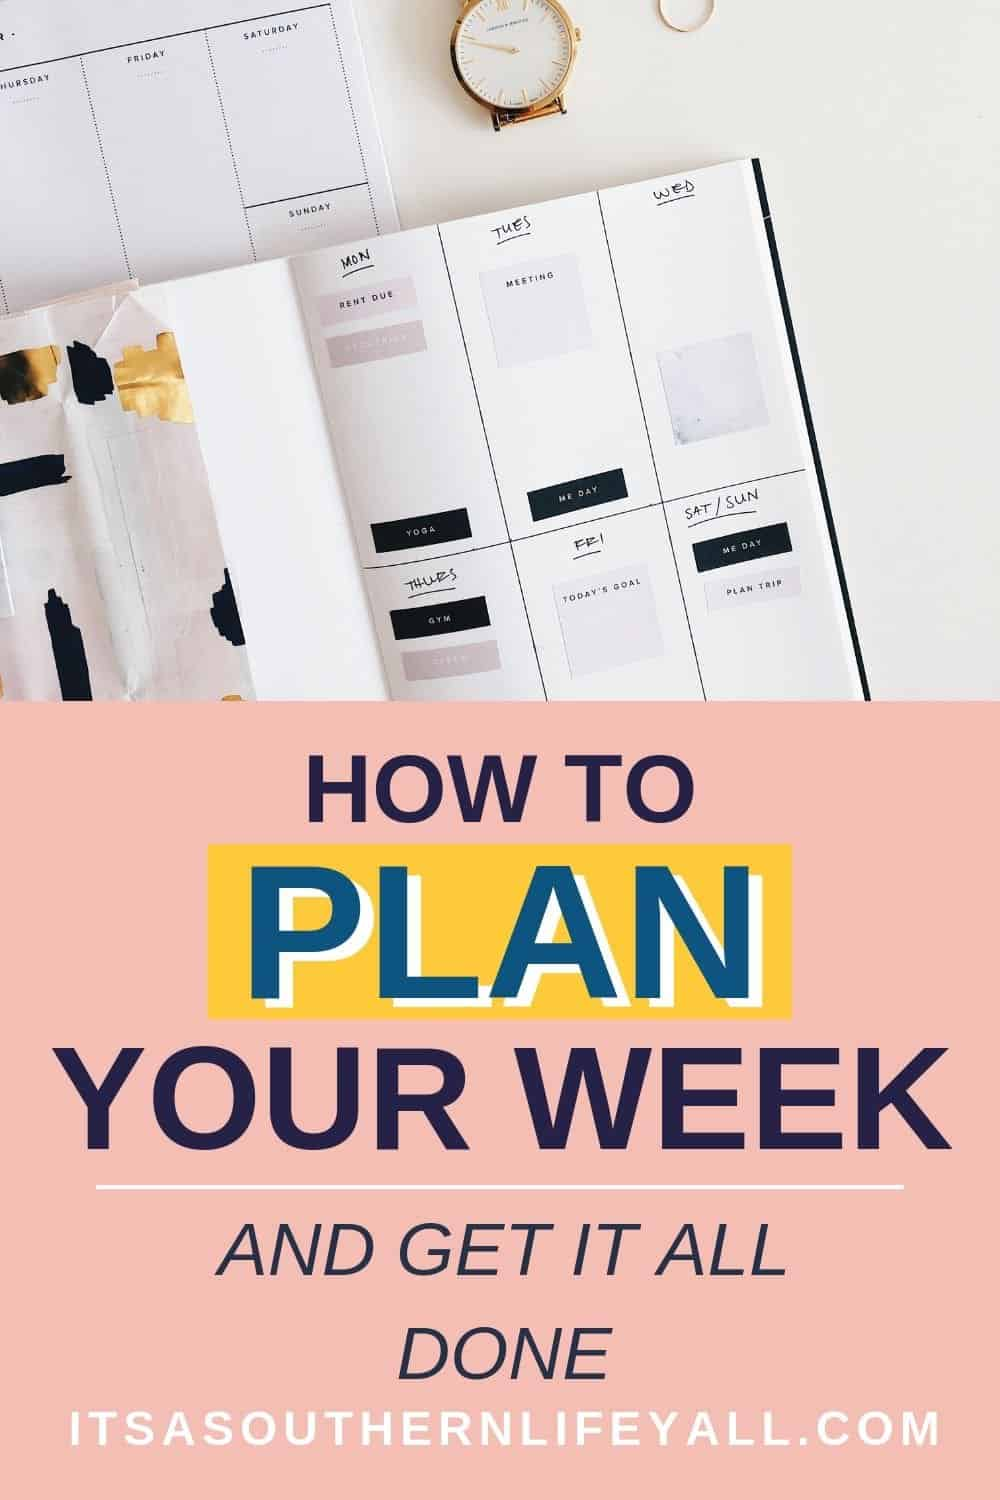 Image of planner open with blocked time. How to plan your week and get it all done text overlay at bottom.